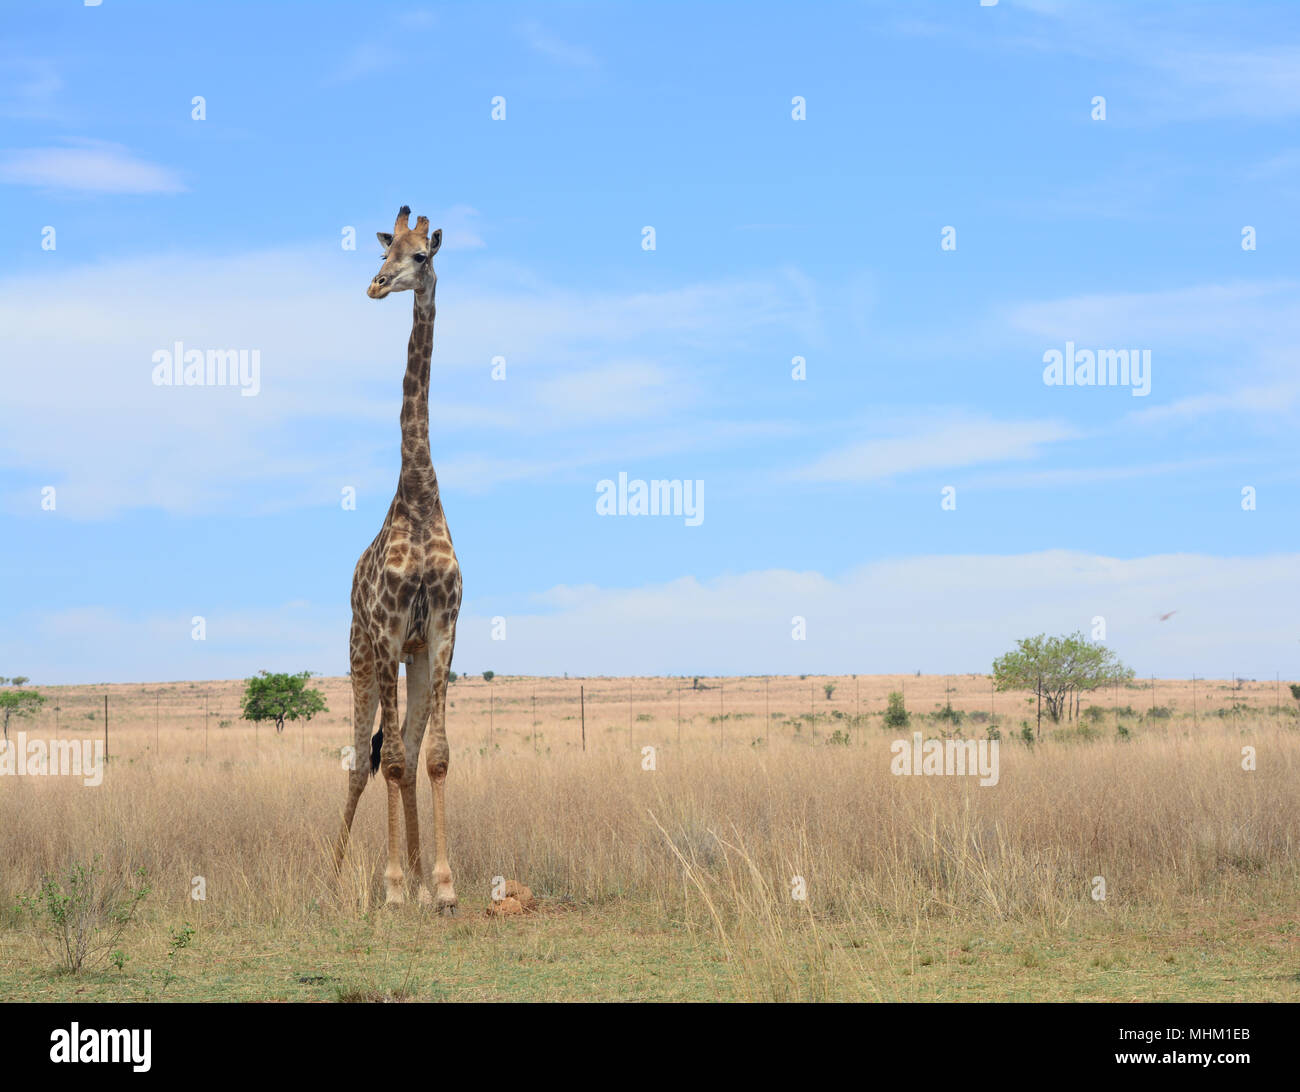 Giraffe grazing in the savannah in South Africa. - Stock Image